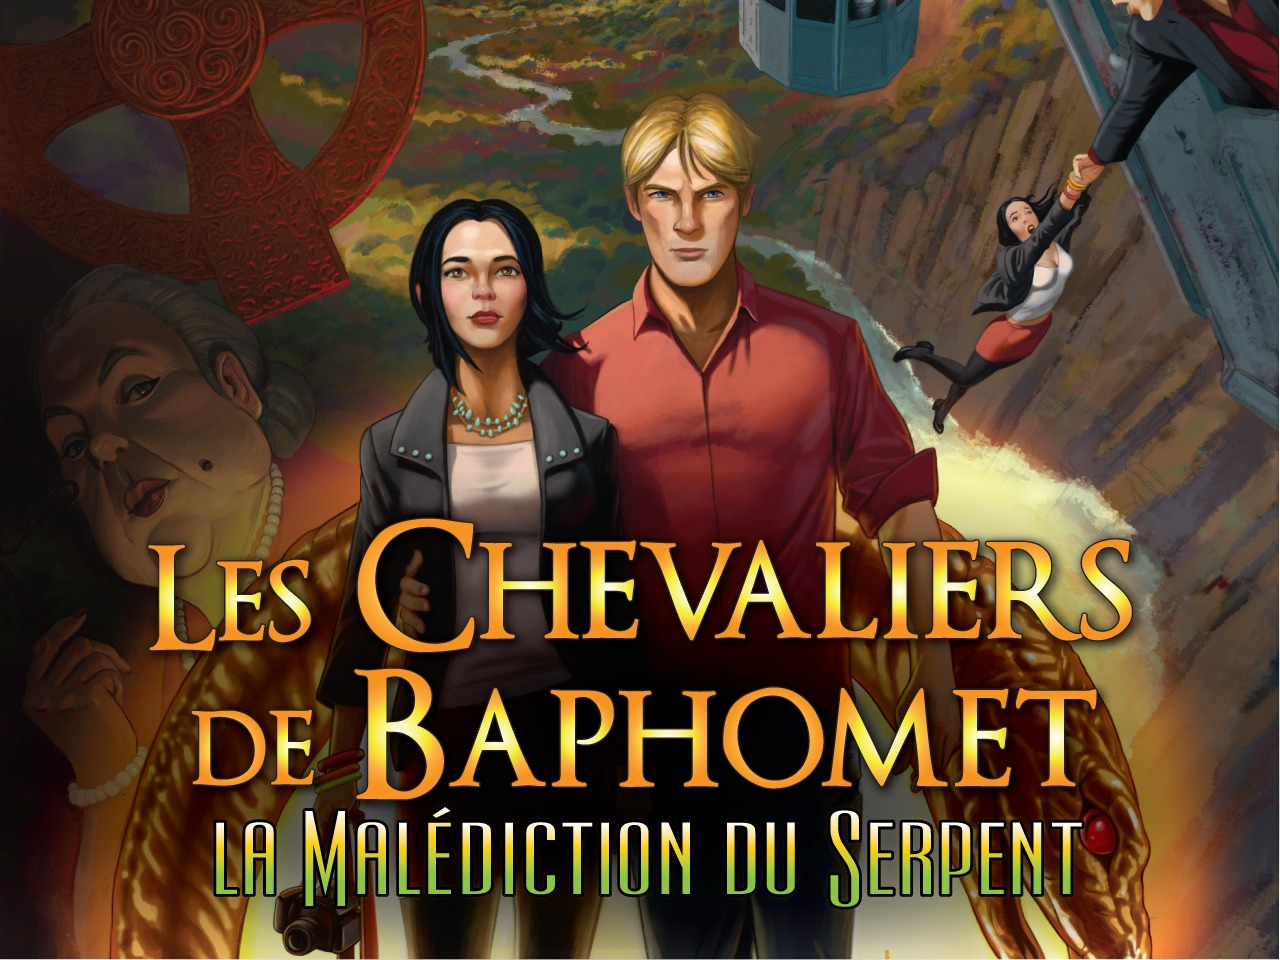 Chevaliers de Baphomet 5 la malédiction du serpent